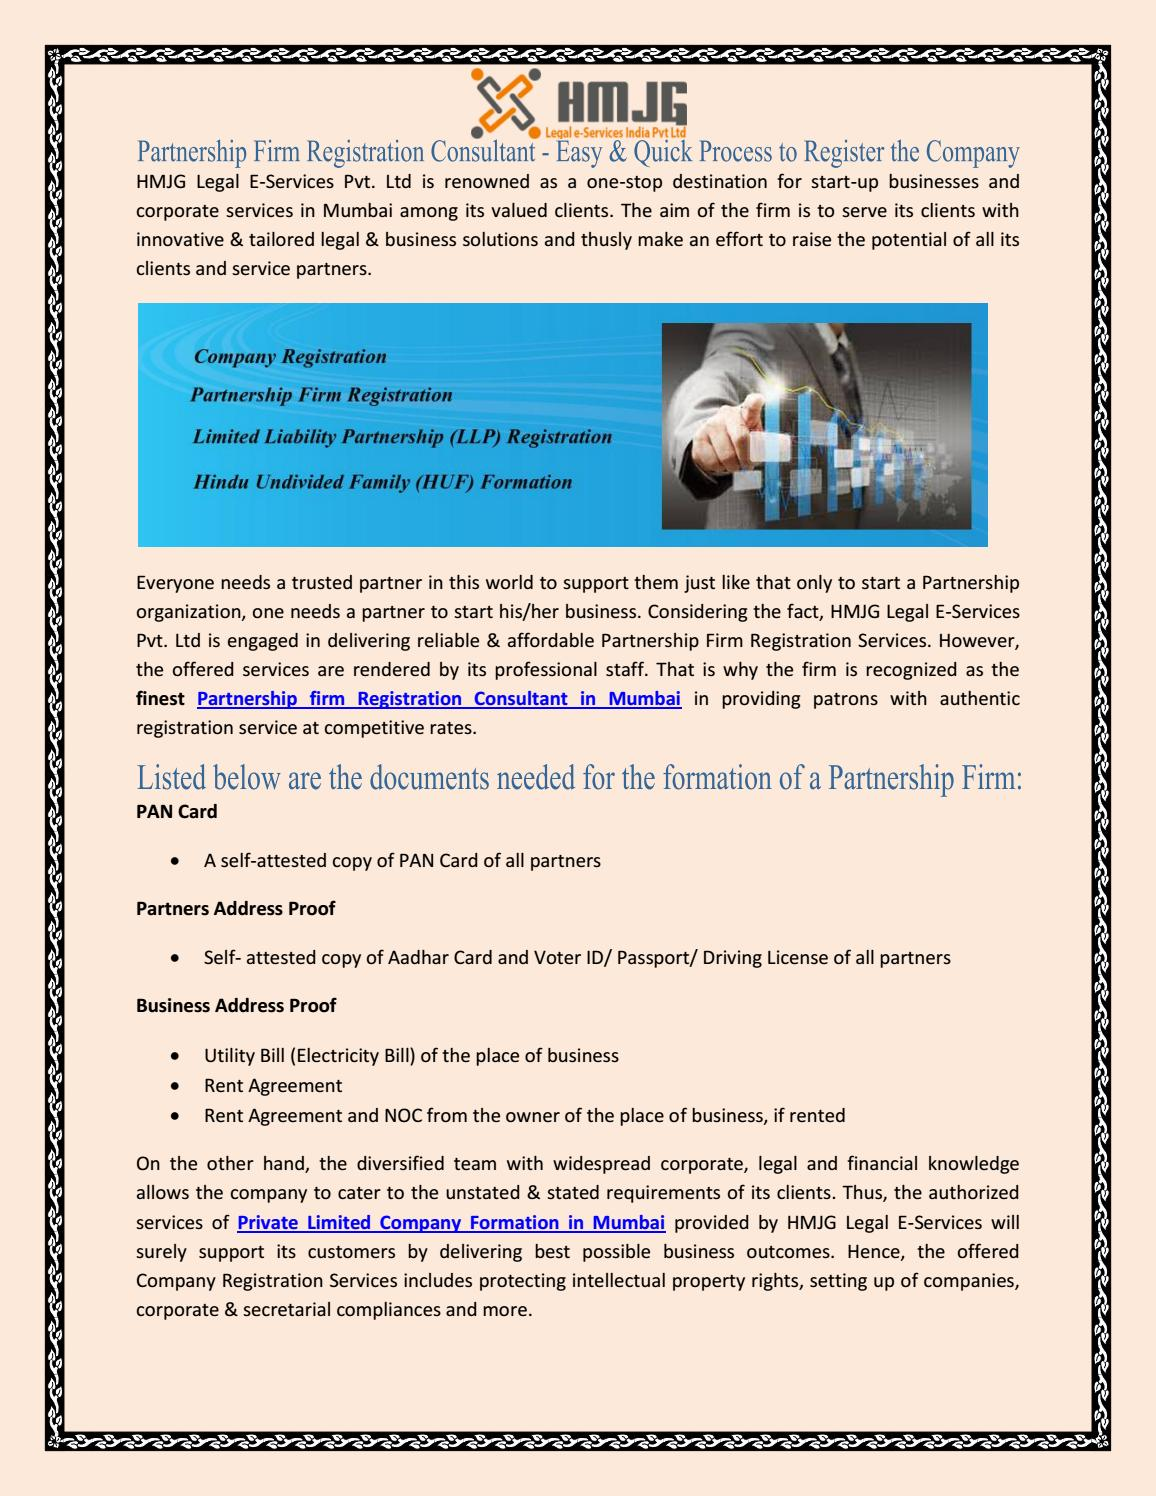 how to register a partnership firm in india